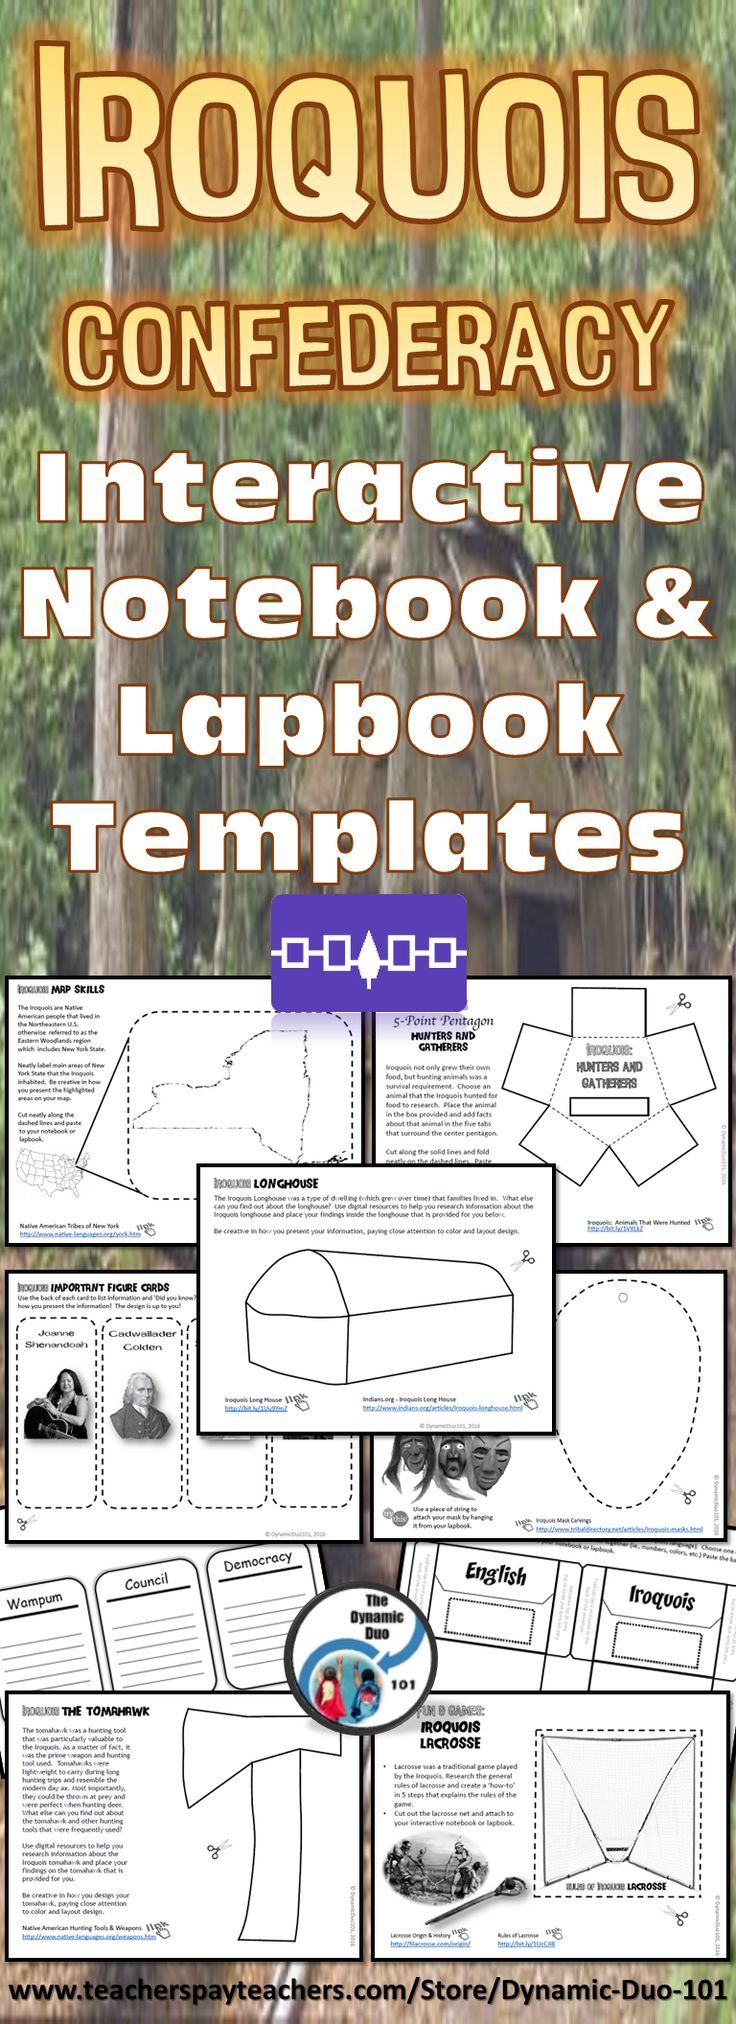 Iroquois Confederacy Interactive Notebook and Lapbook Activities - perfect engaging lesson activities for your Native American unit!